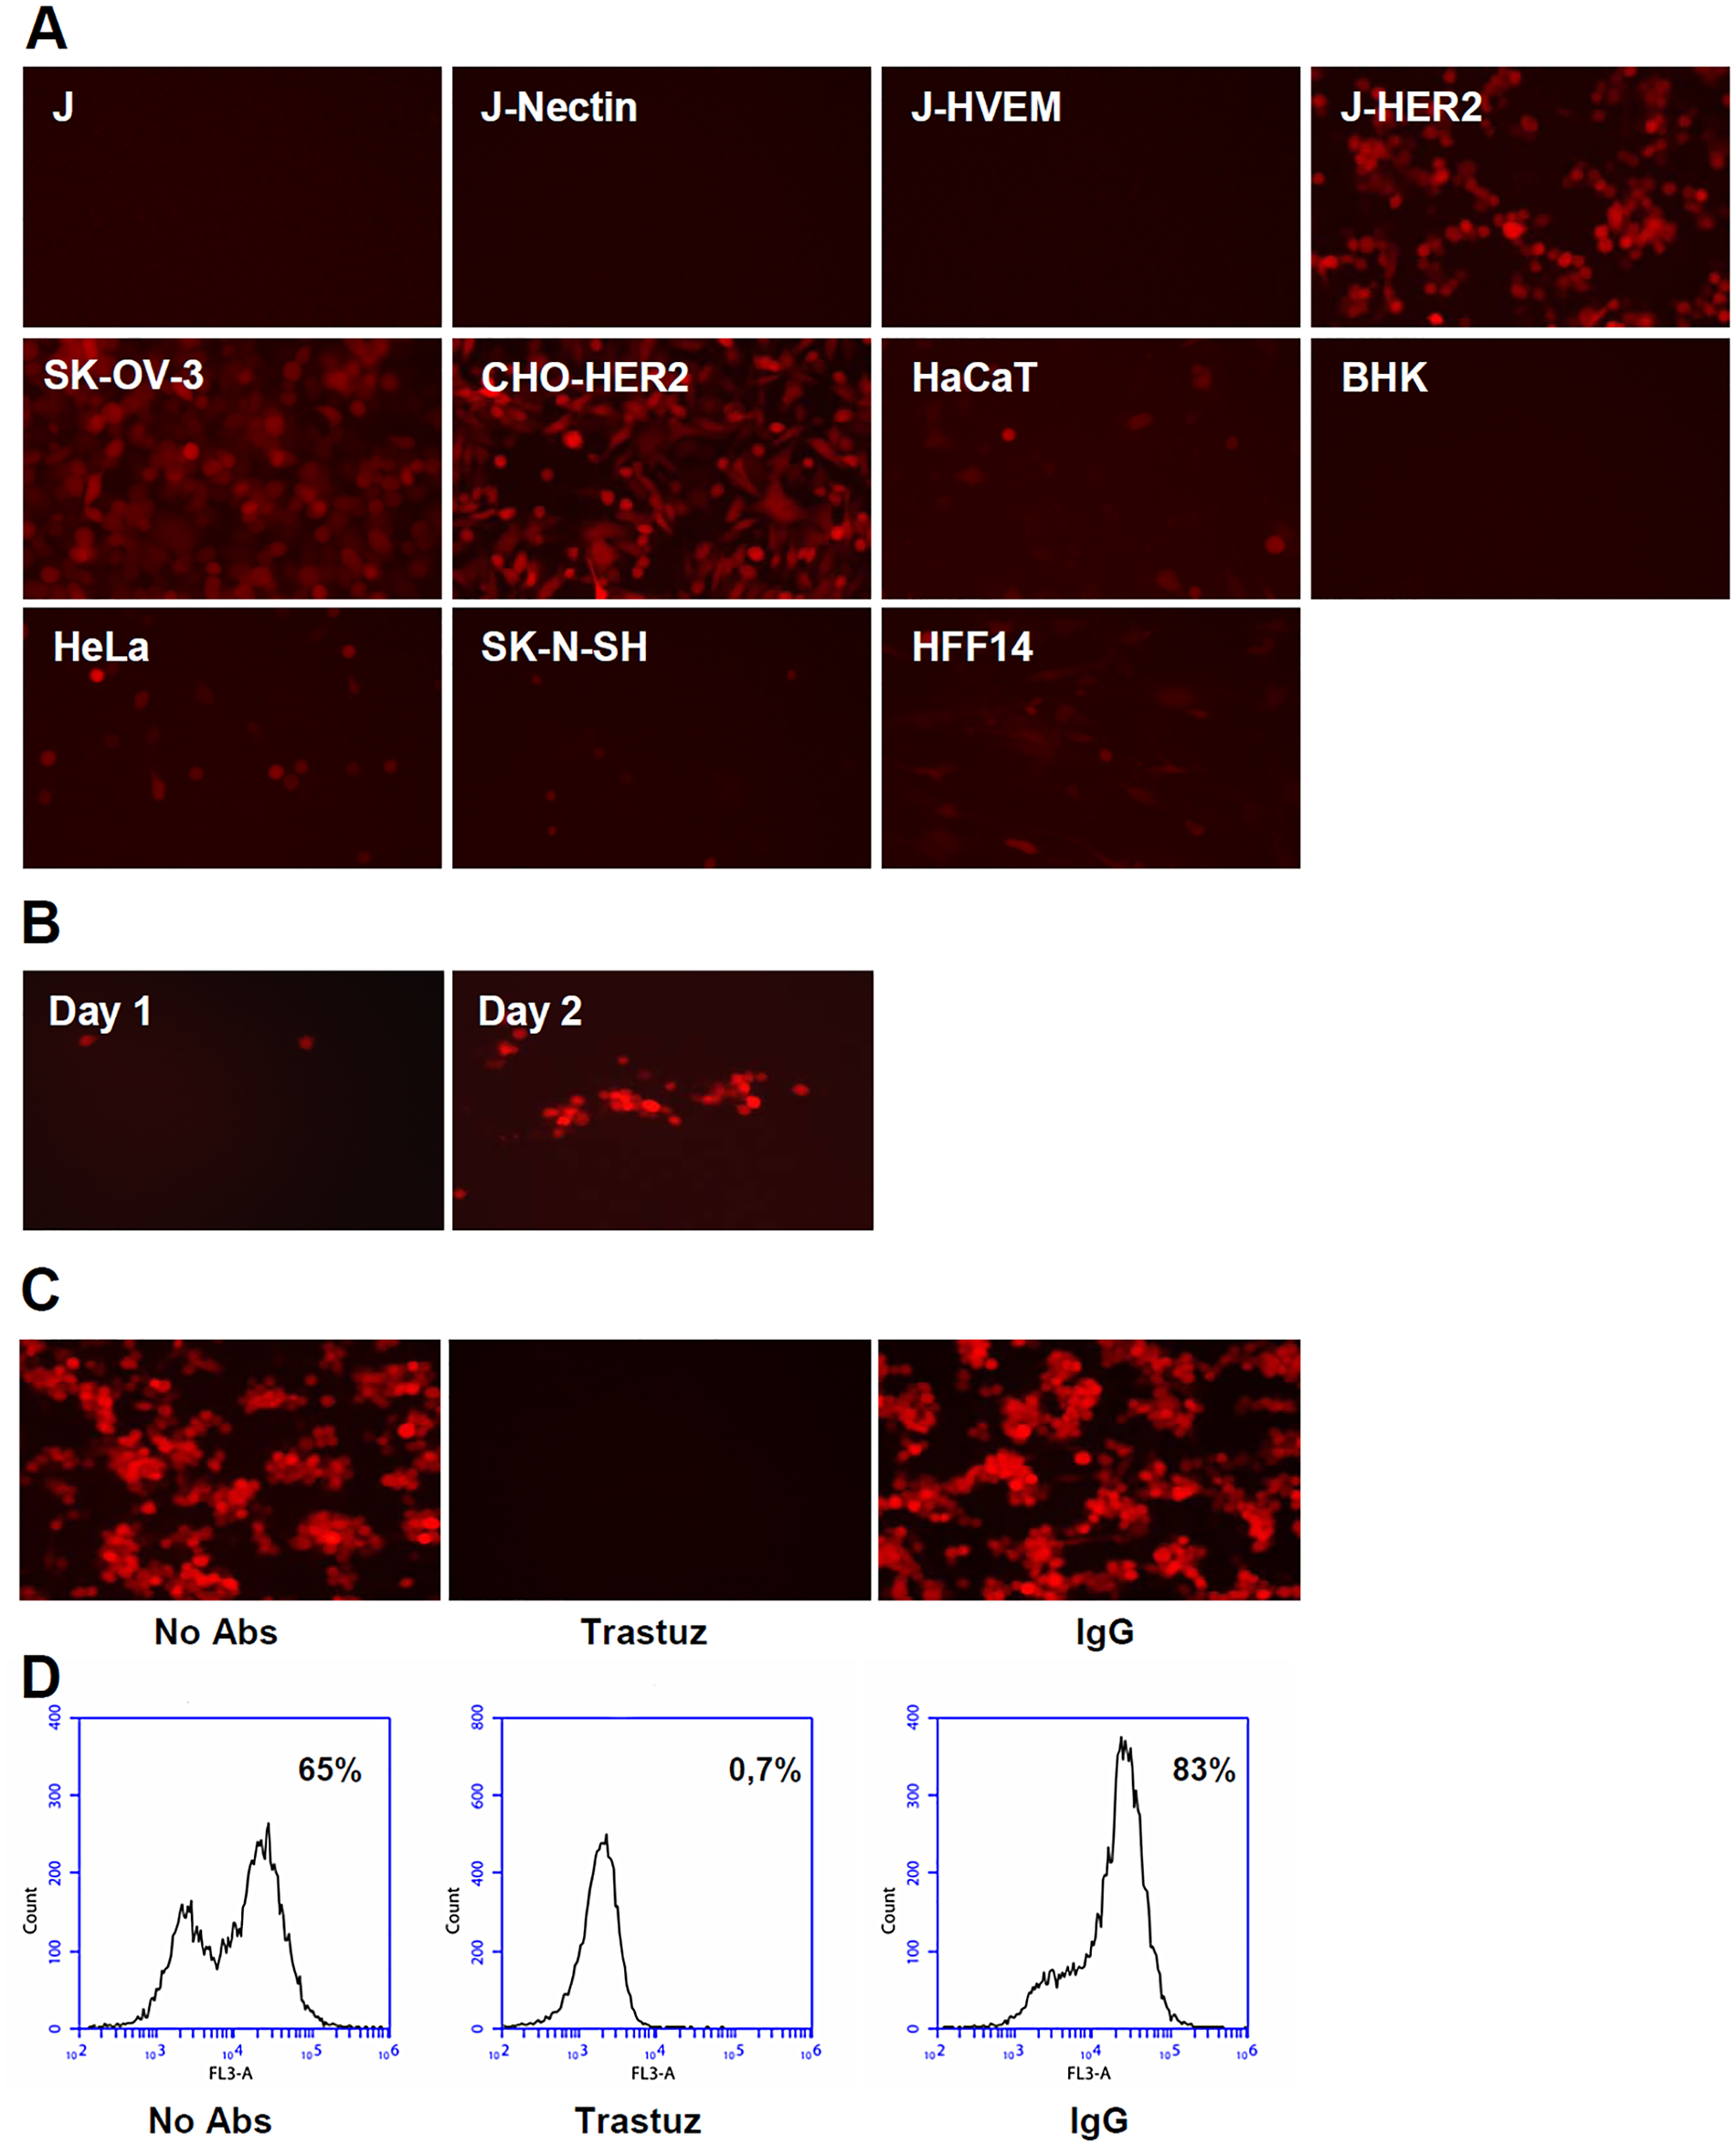 R-VG809 infects cells that express HER2, fails to infect cells <i>via</i> gD receptors, and progeny virus spreads in J-HER2 cells.